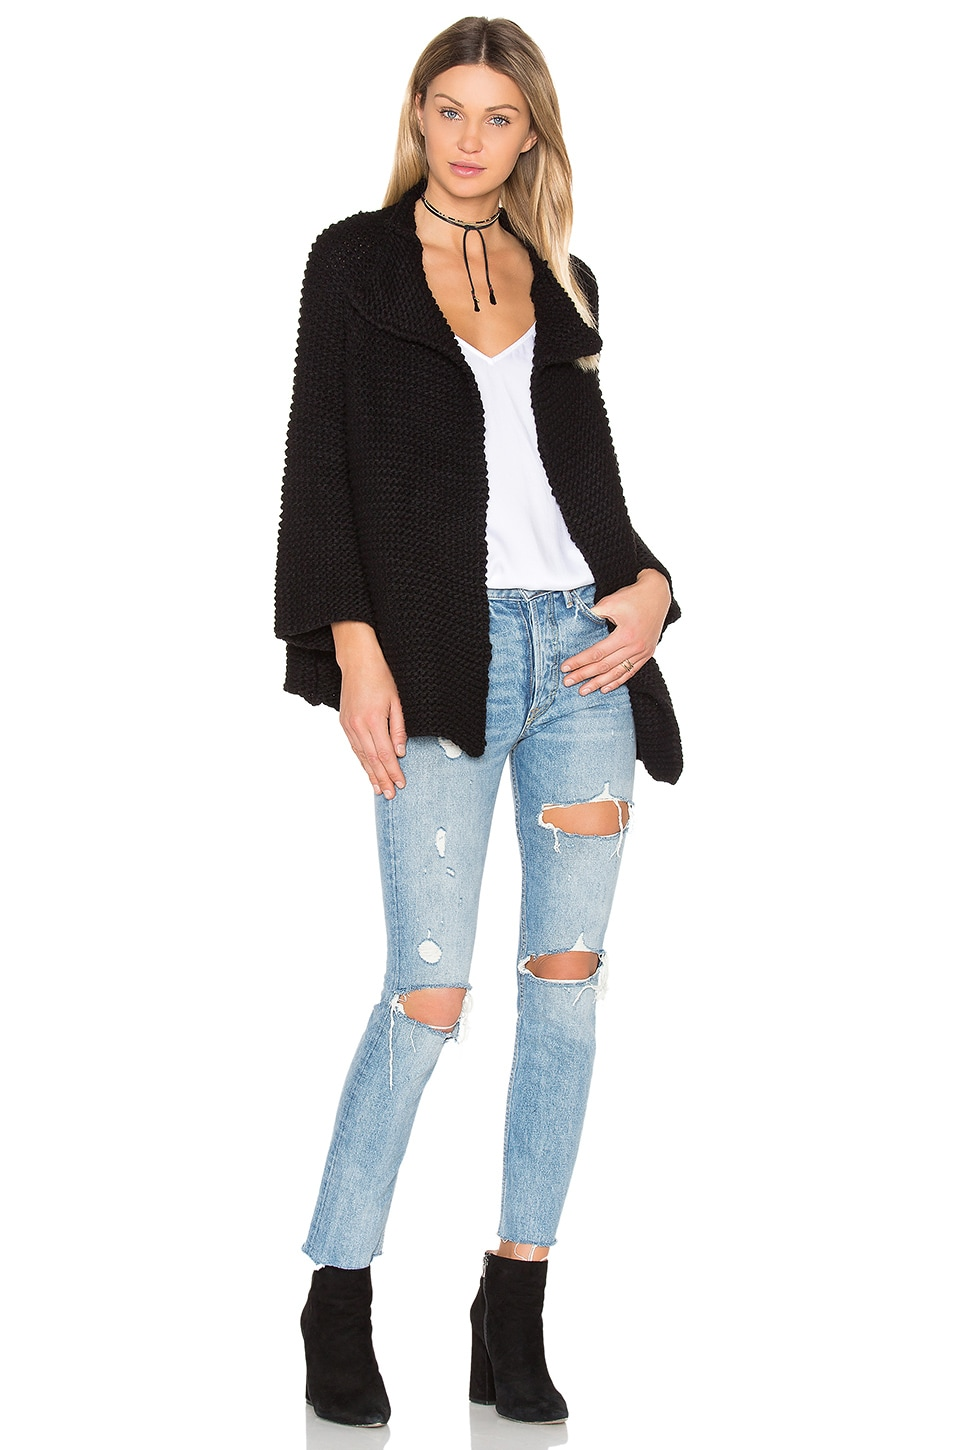 BLQ BASIQ Oversize Knit Cardigan Sweater in Black